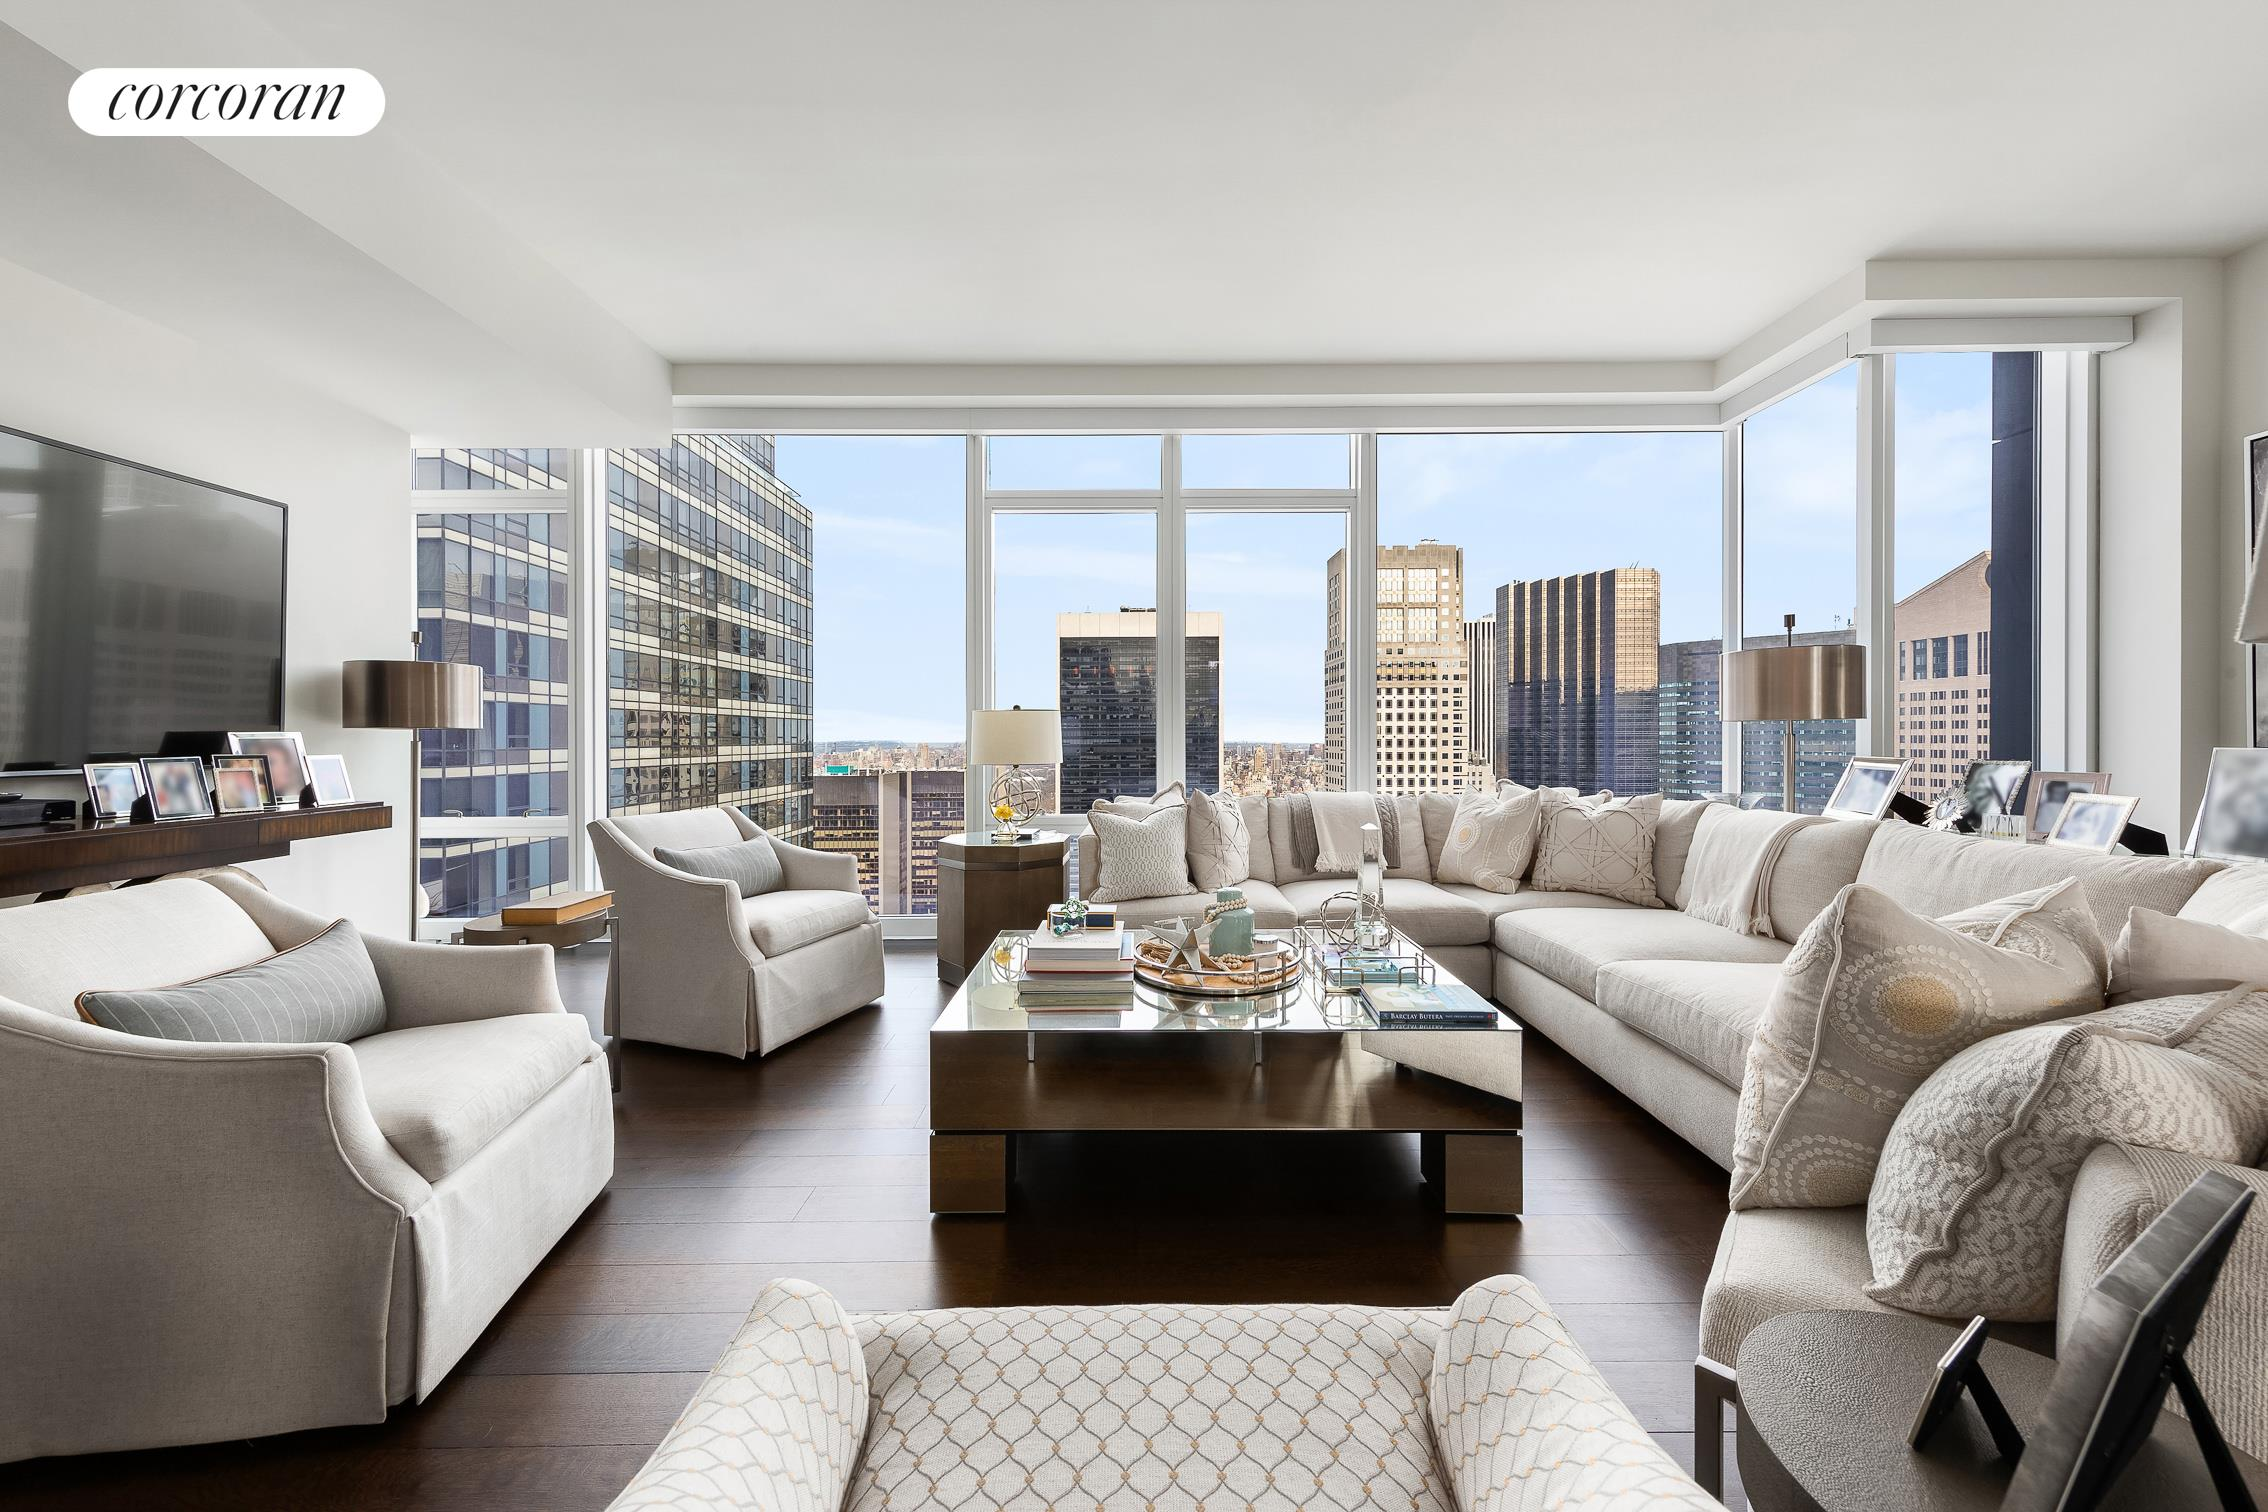 Apartment for sale at 20 West 53rd Street, Apt 43FLR